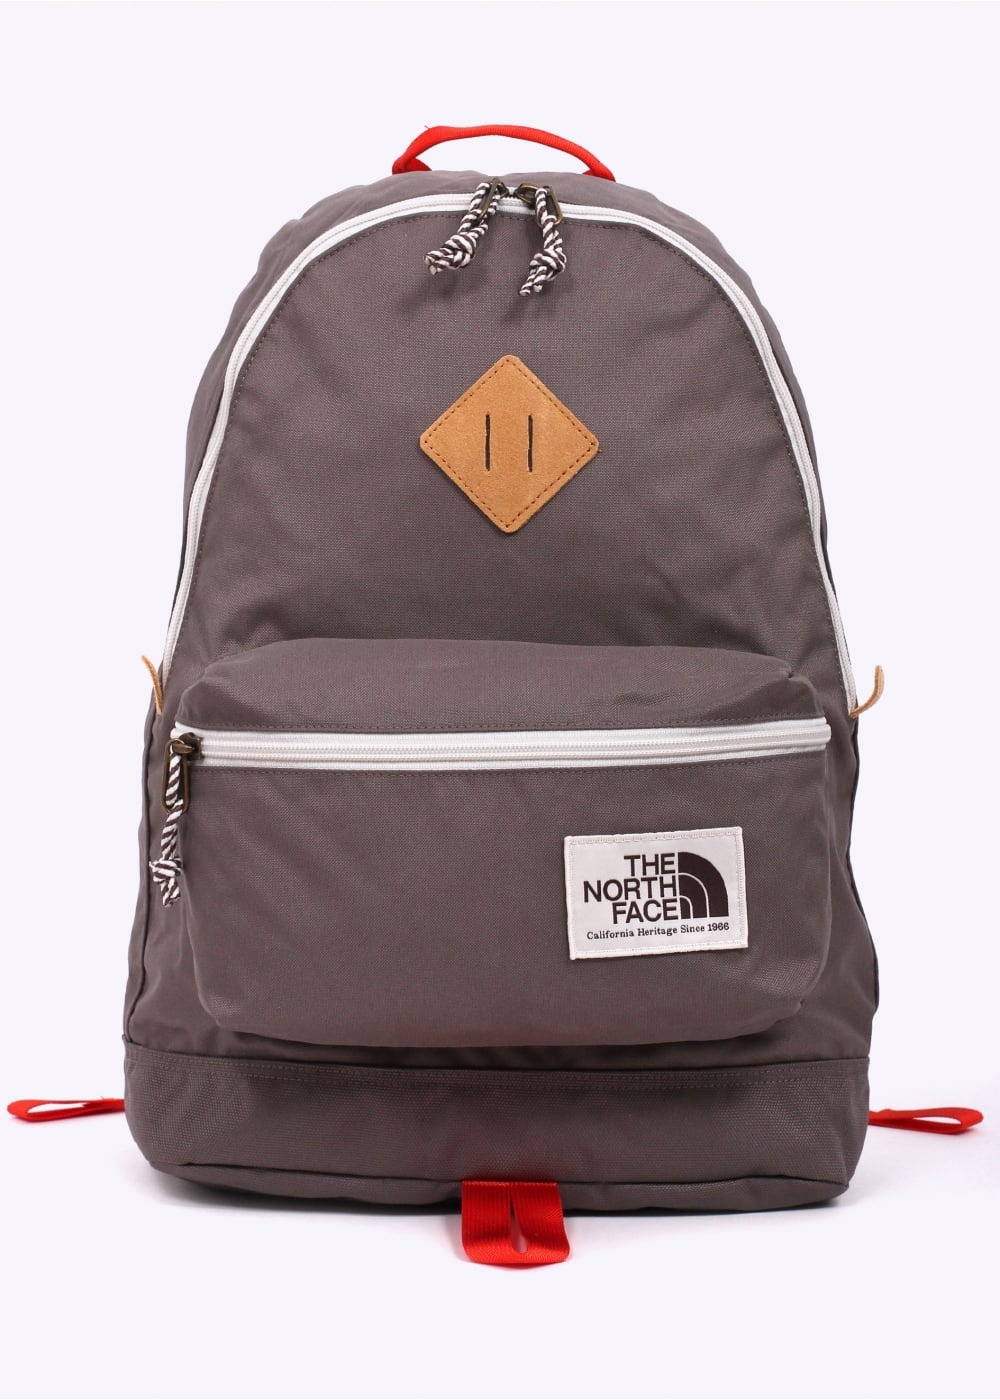 359b3ef502 The North Face Berkeley Bag - Falcon Brown - Bags from Triads UK